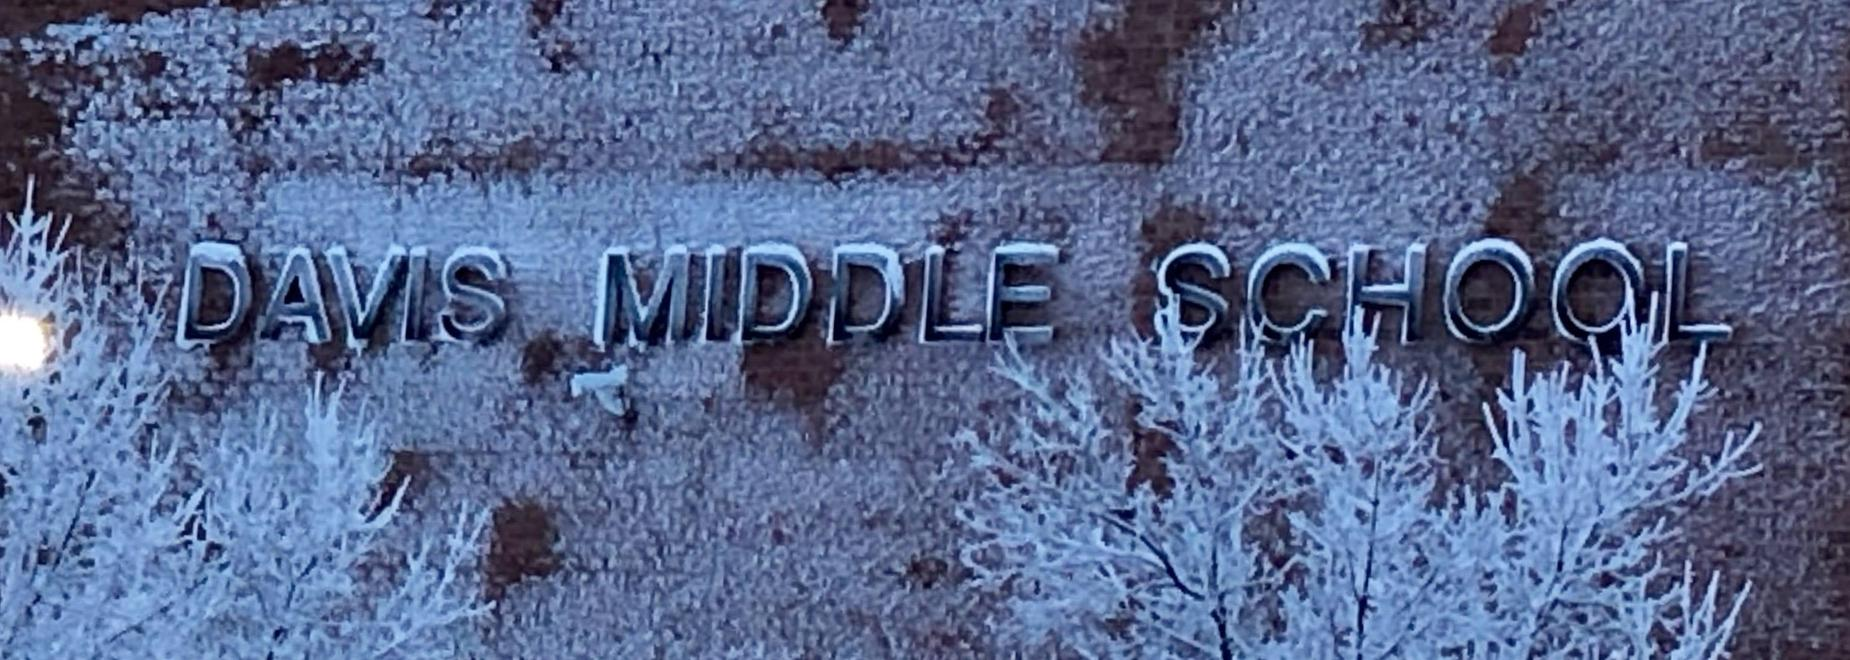 Davis Middle School outdoor sign covered in snow